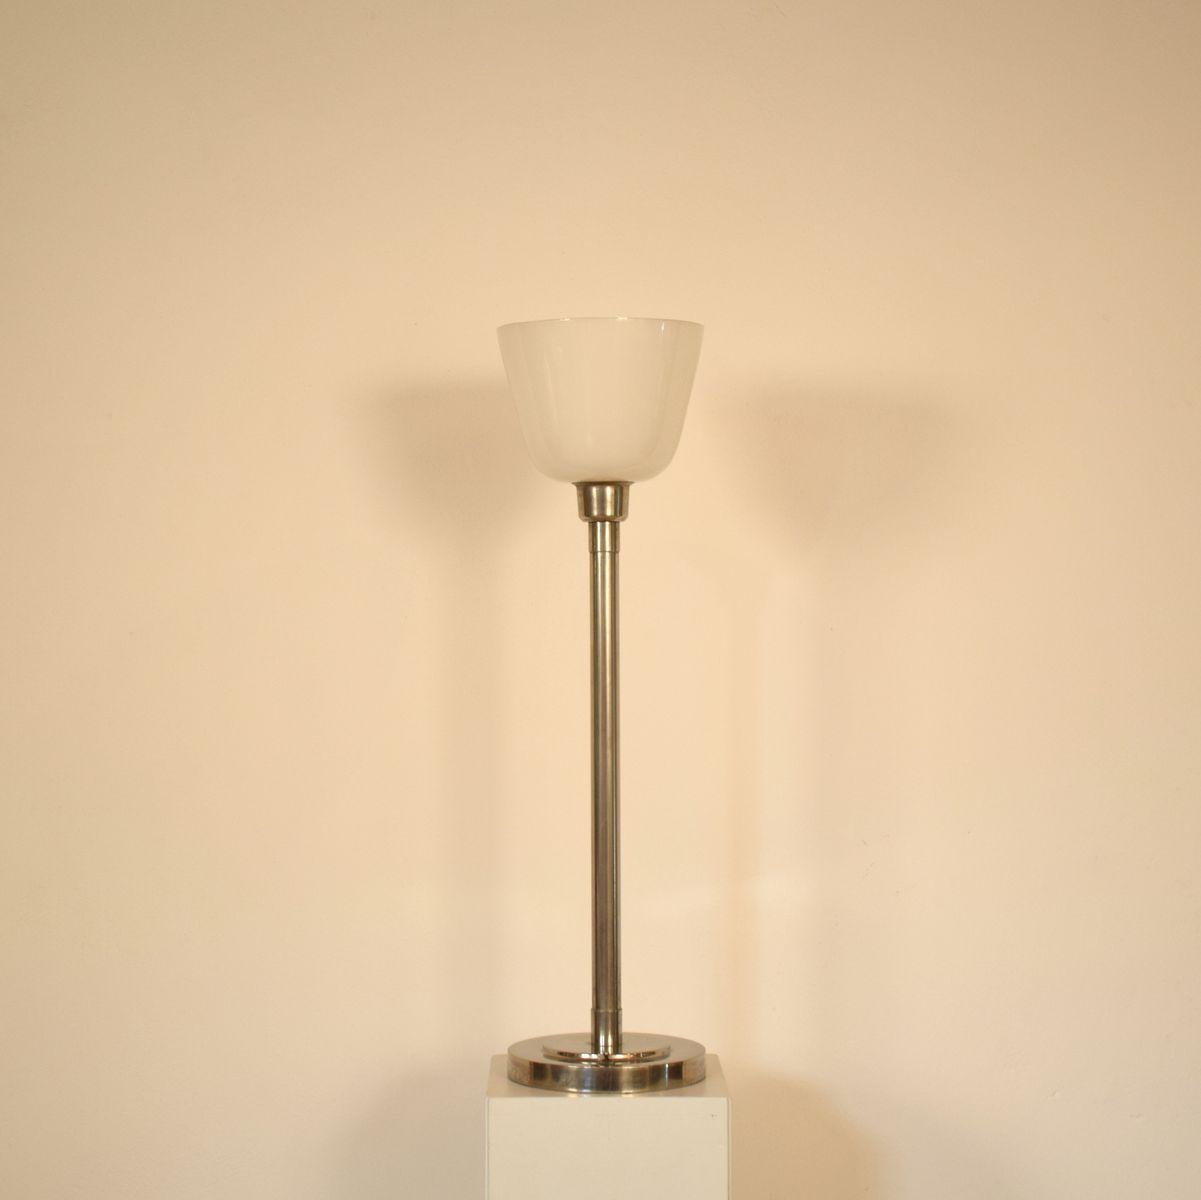 Vintage German Art Deco Lamp 1930s For Sale At Pamono